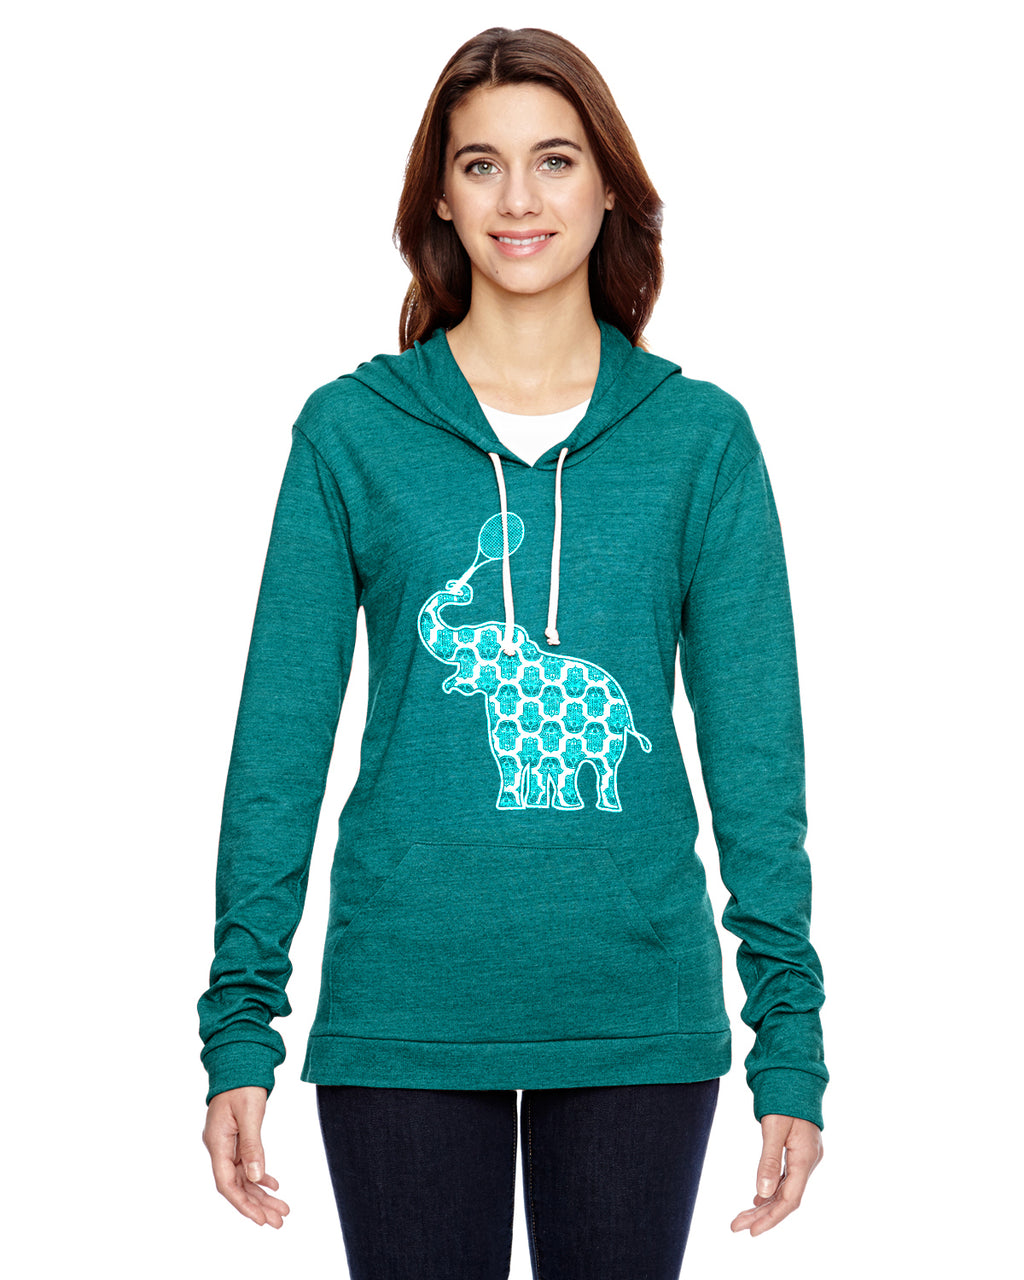 Elephant with Tennis Racquet Tennis Eco Jersey Pullover Hoodie Animal Sports Collection